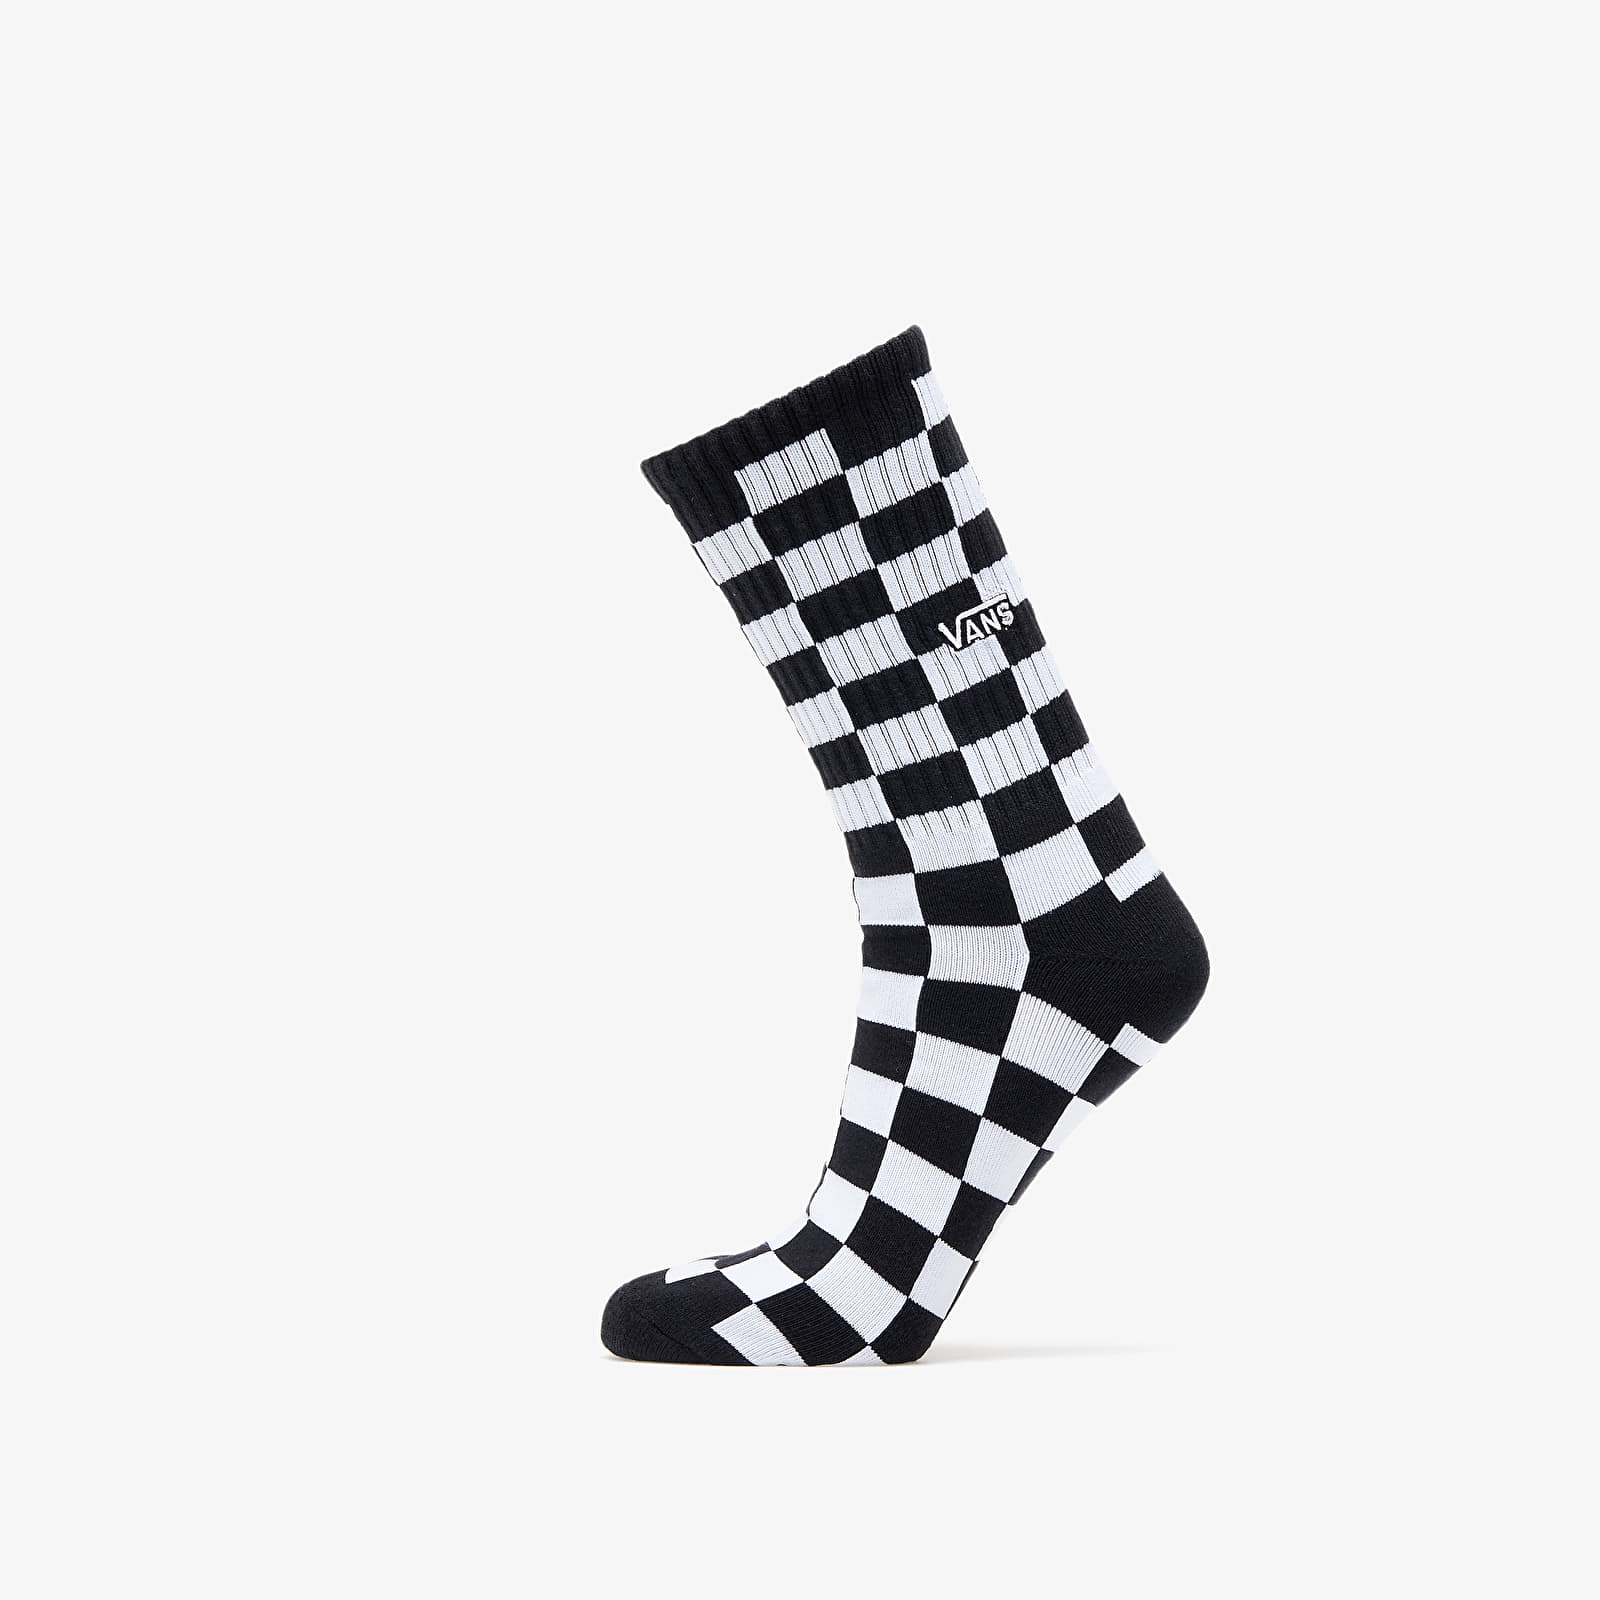 Nogavice Vans Checkerboard II Crew Socks Black/ White Check